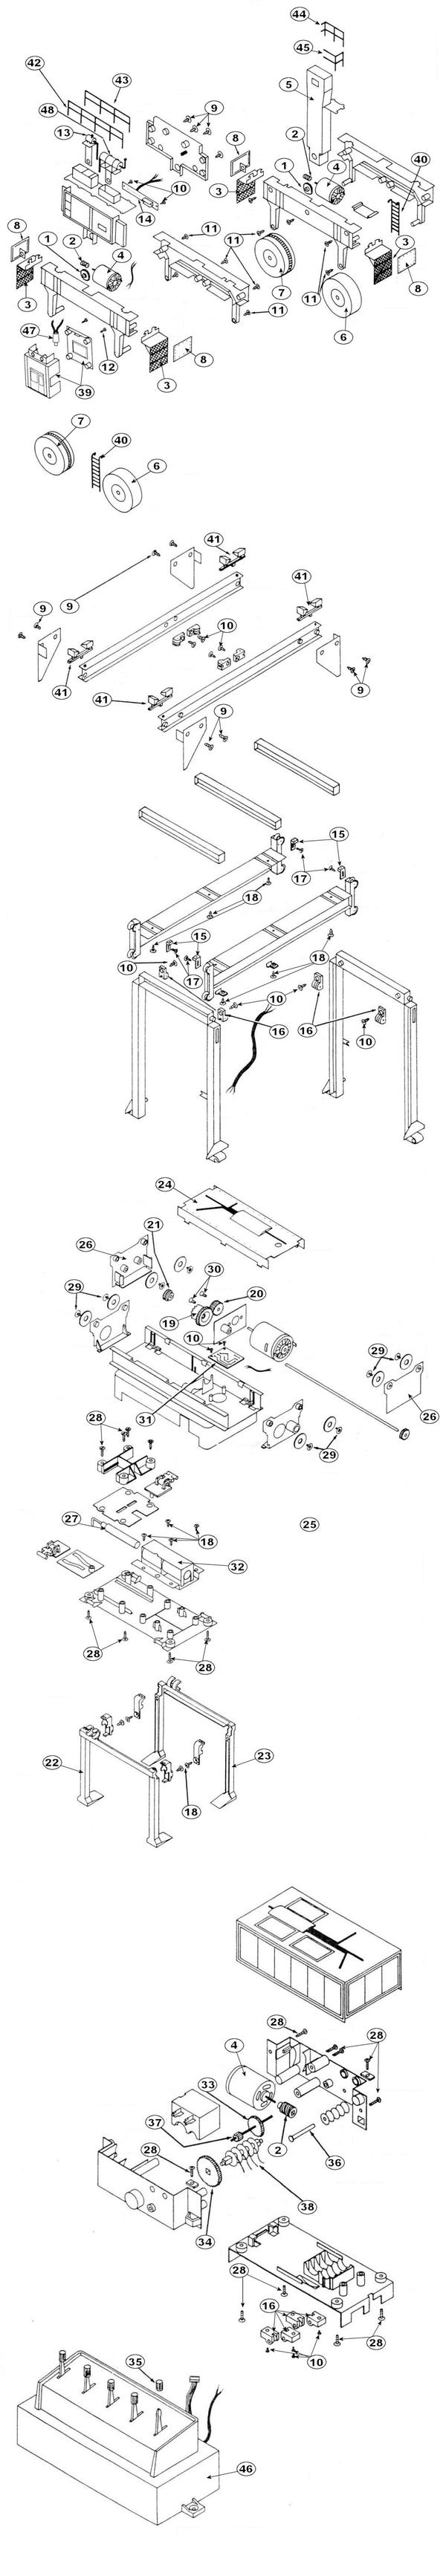 Model Train Replacement Parts : Lionel parts list and exploded diagrams automotive